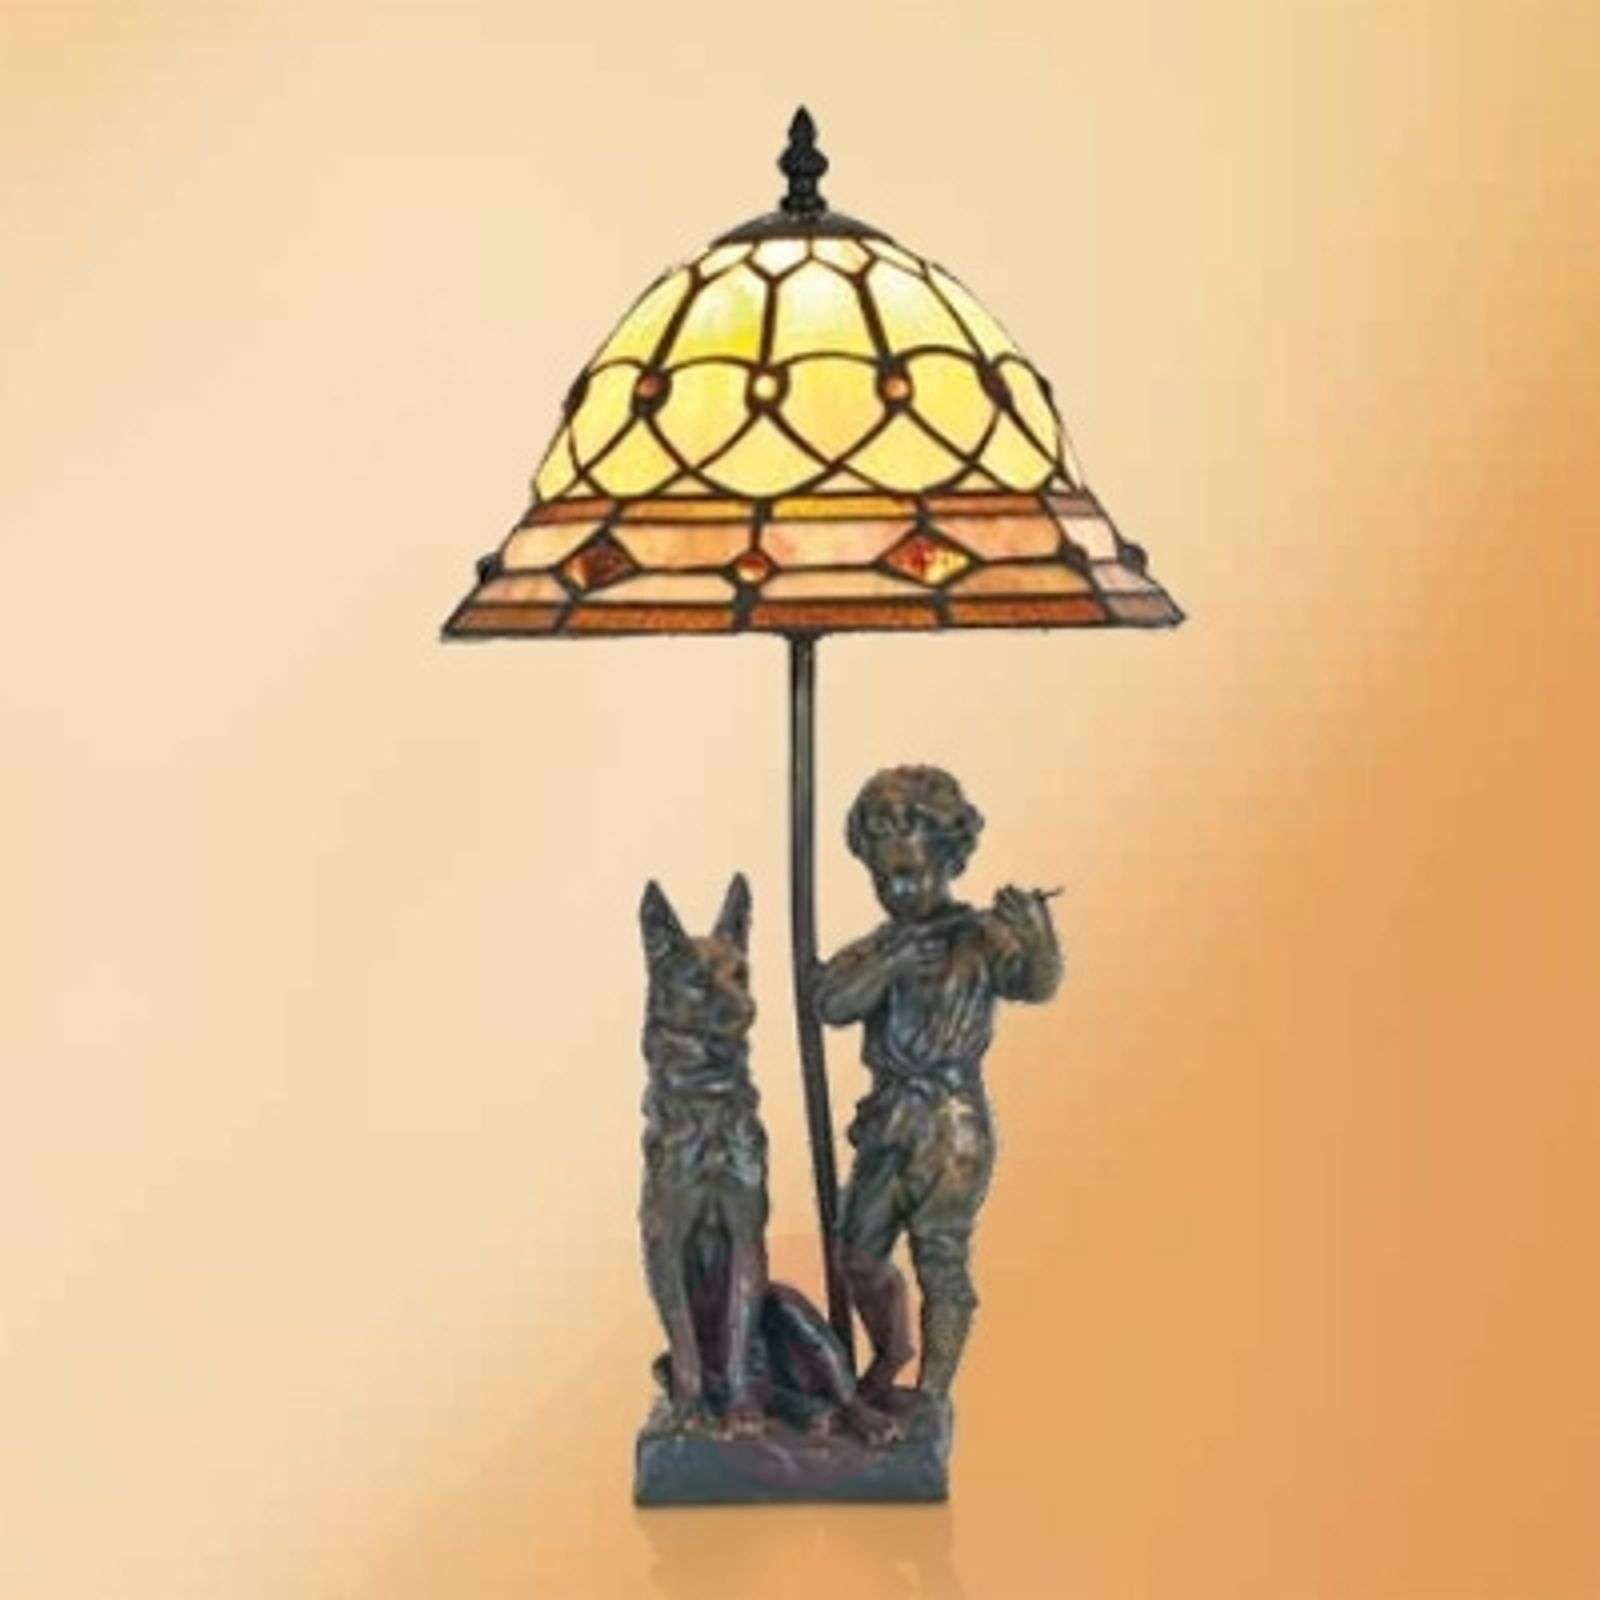 Hugo table lamp with resin figures, Tiffany style-1032299-01